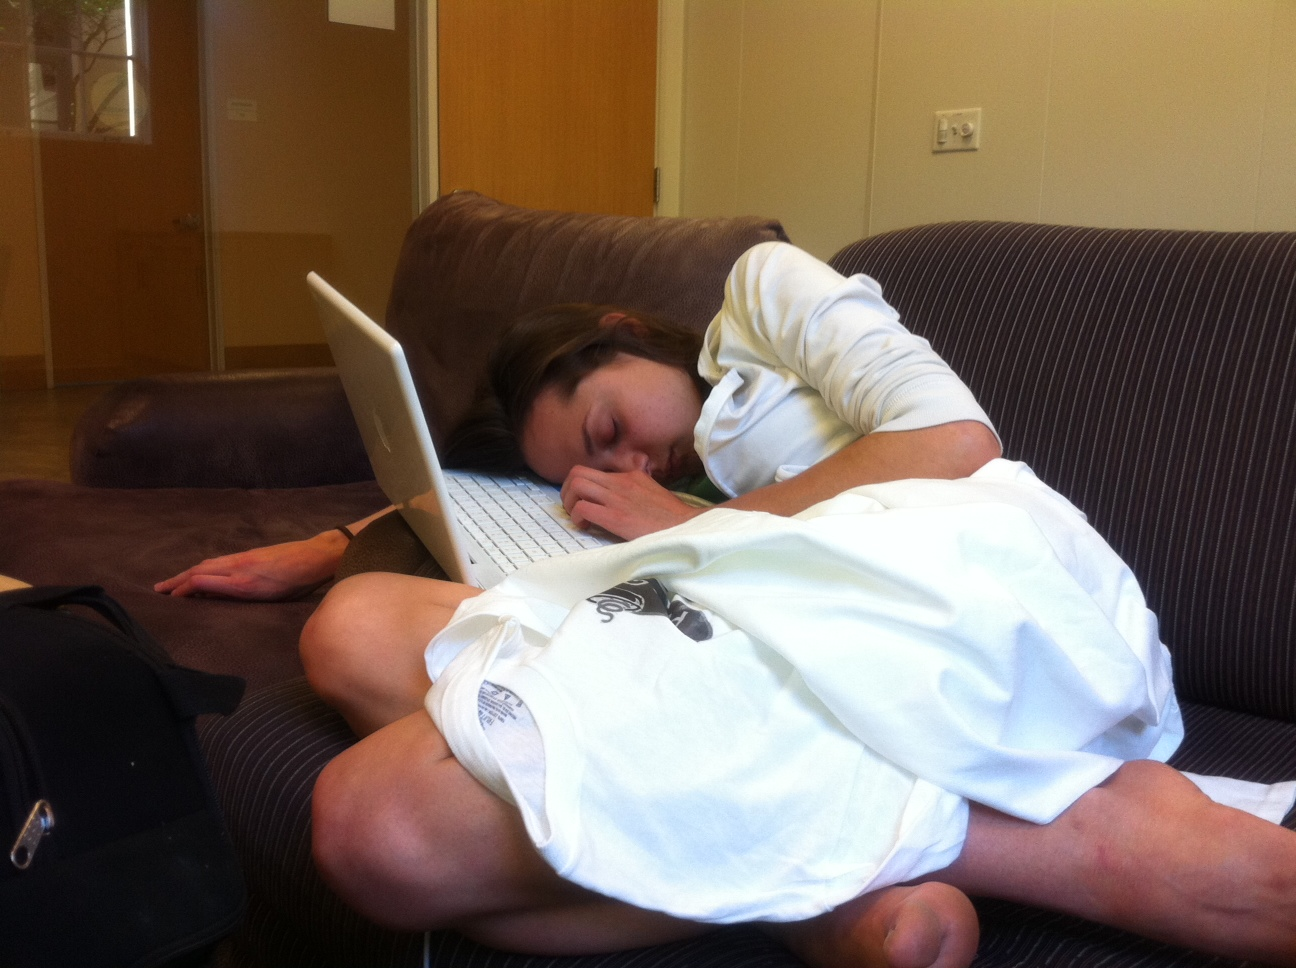 Student Wakes up Late for Take-Home Final